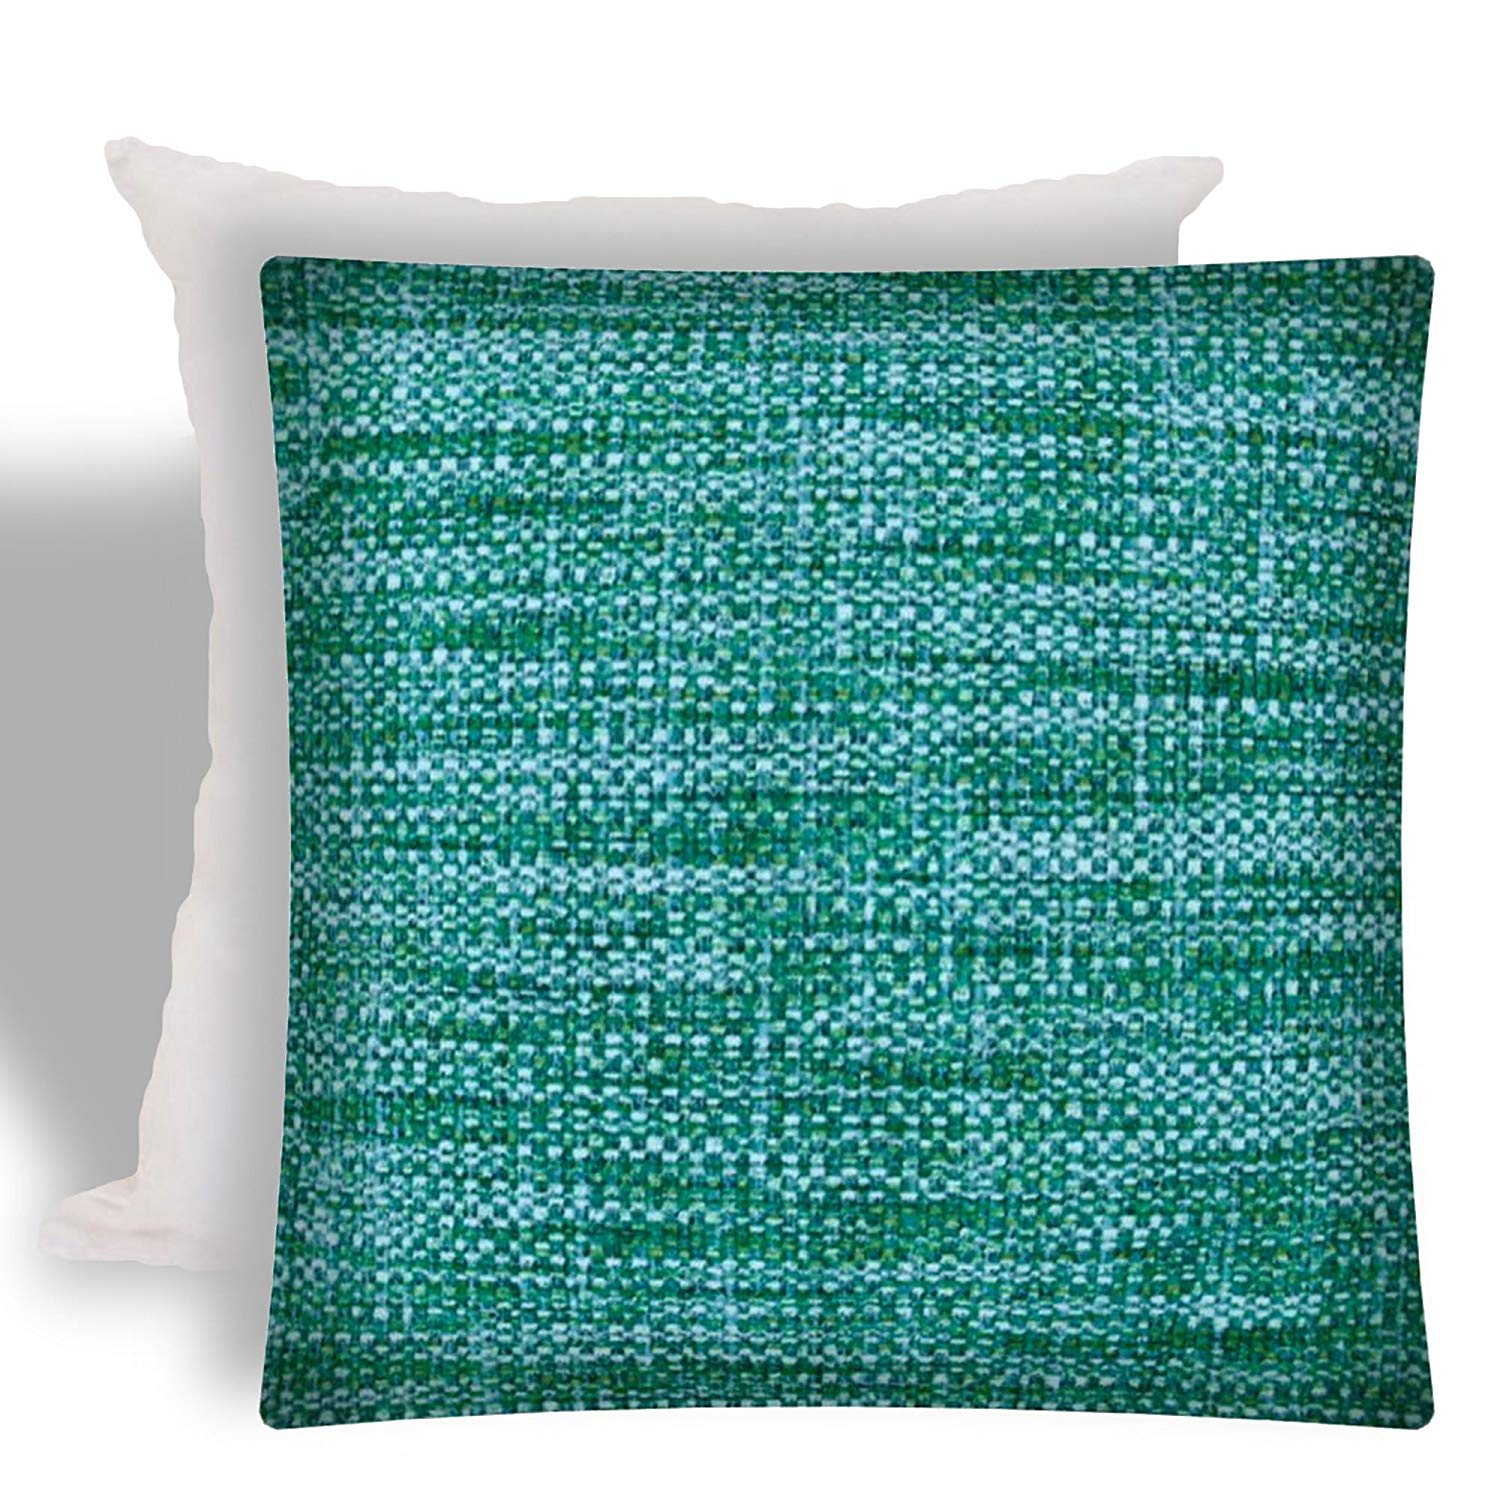 Joita Home BOHO SEA Aqua Indoor/Outdoor - Zippered Pillow Covers with Inserts (Set of 2)